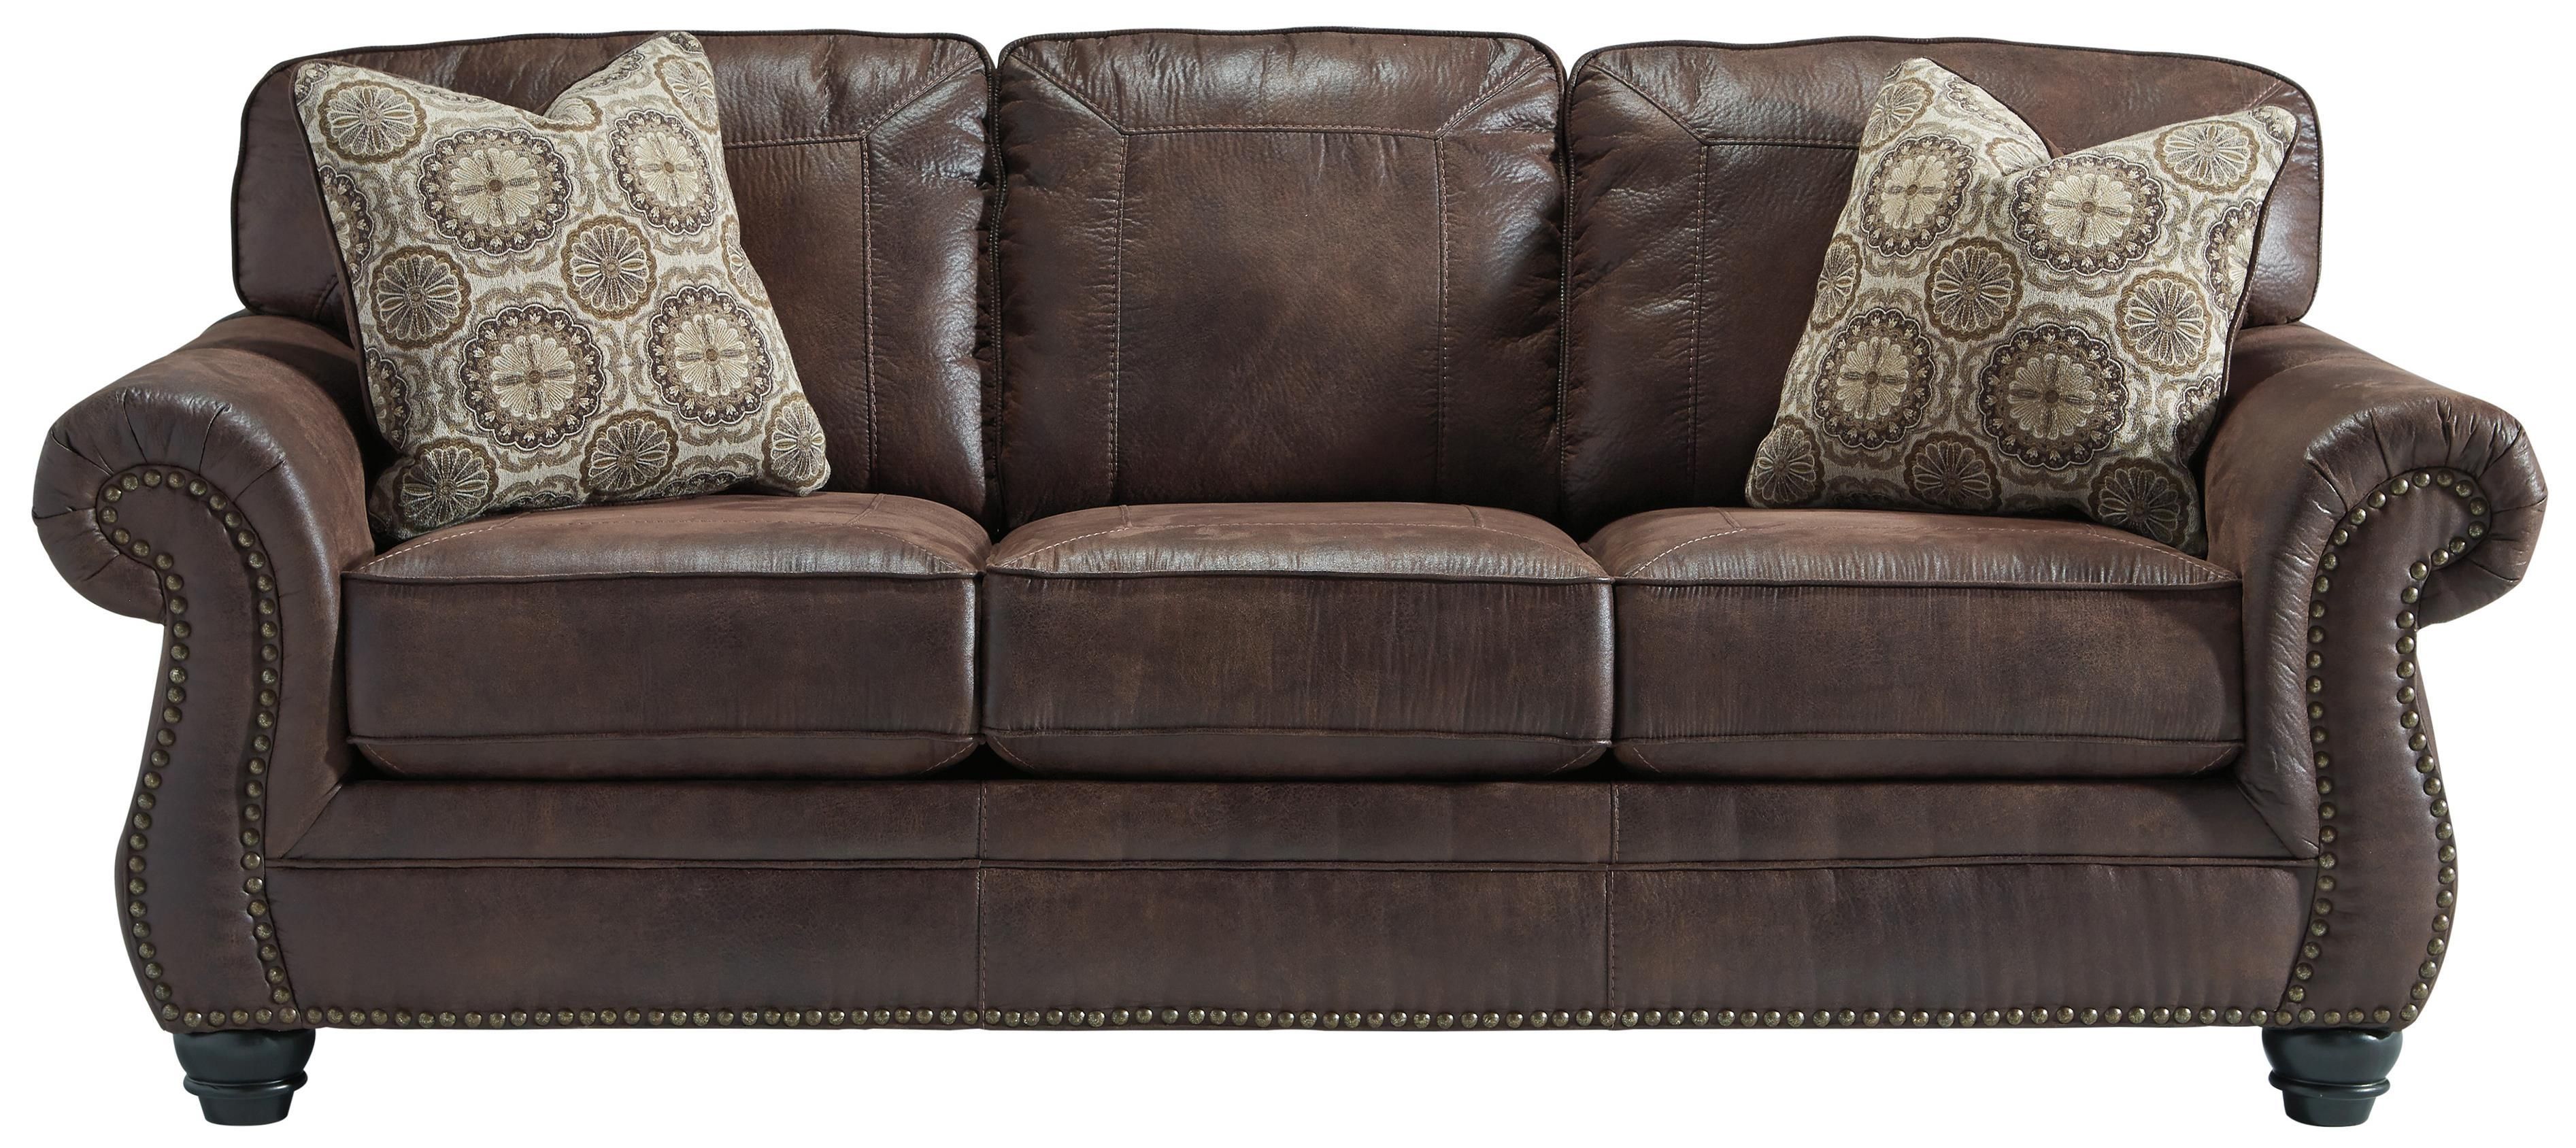 Faux Leather Sofa With Rolled Arms And Nailhead Trimbenchcraft Pertaining To Brown Leather Sofas With Nailhead Trim (Image 8 of 20)